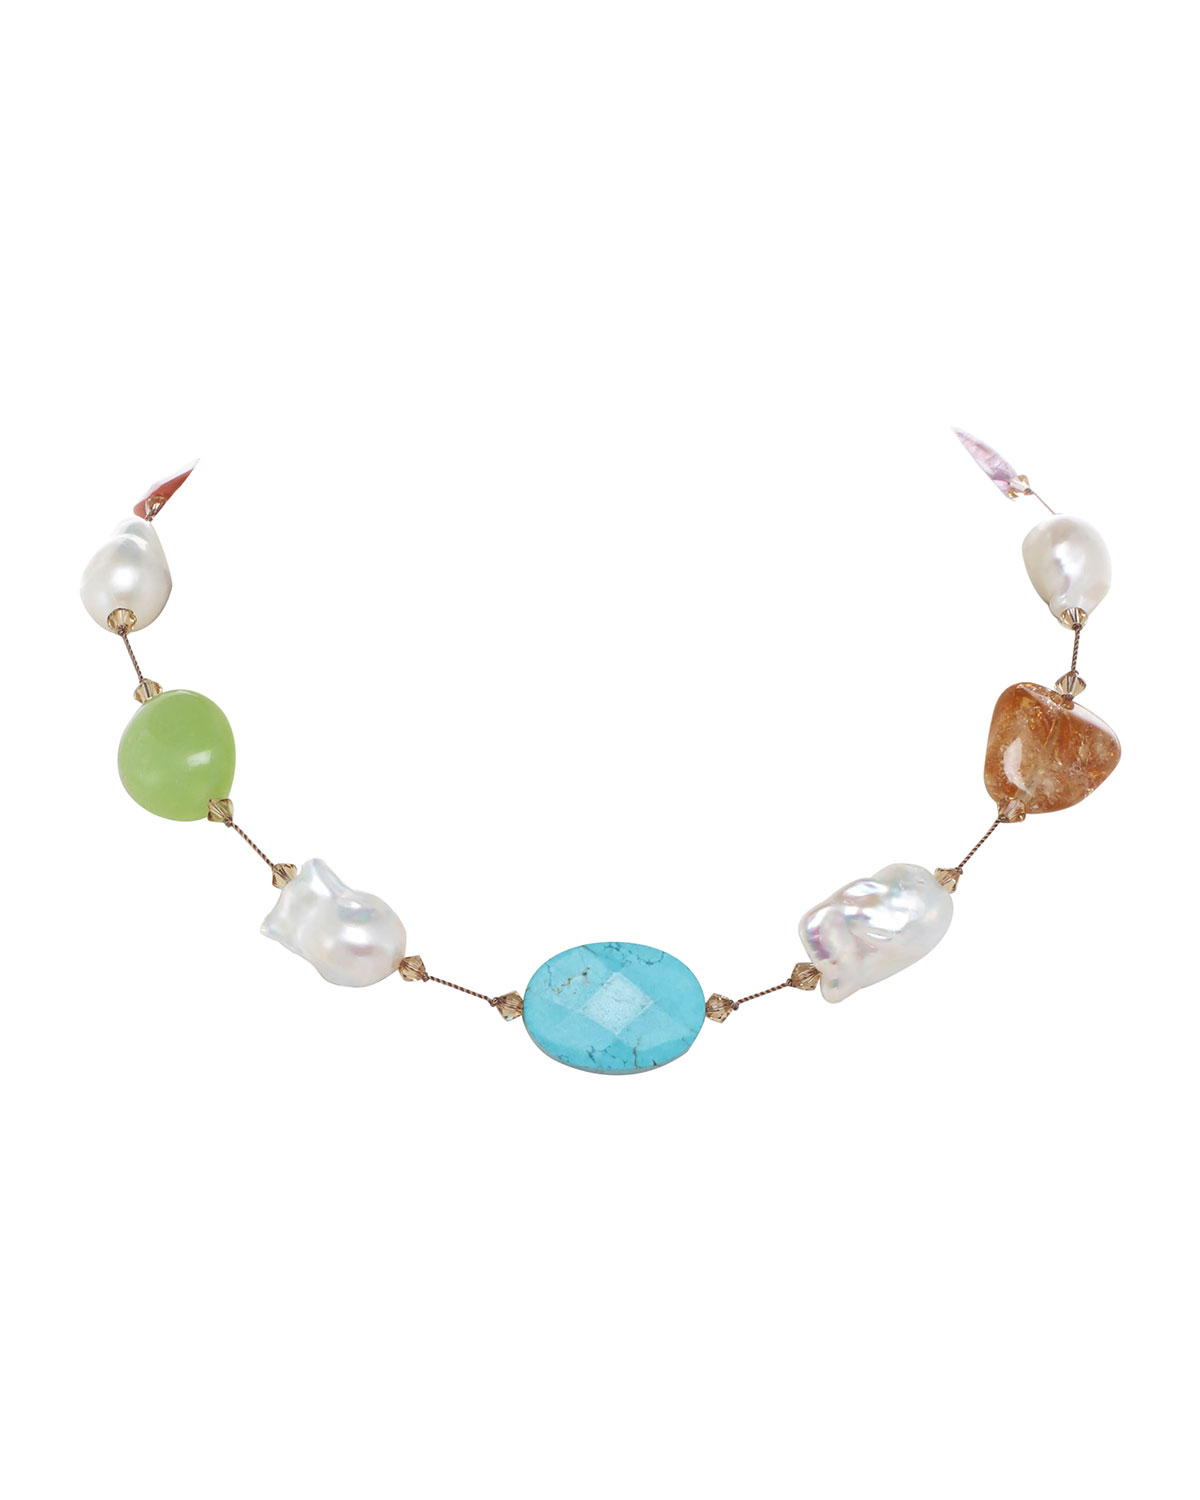 Large Multi-Stone and Baroque Pearl Necklace with Swarovski Crystal